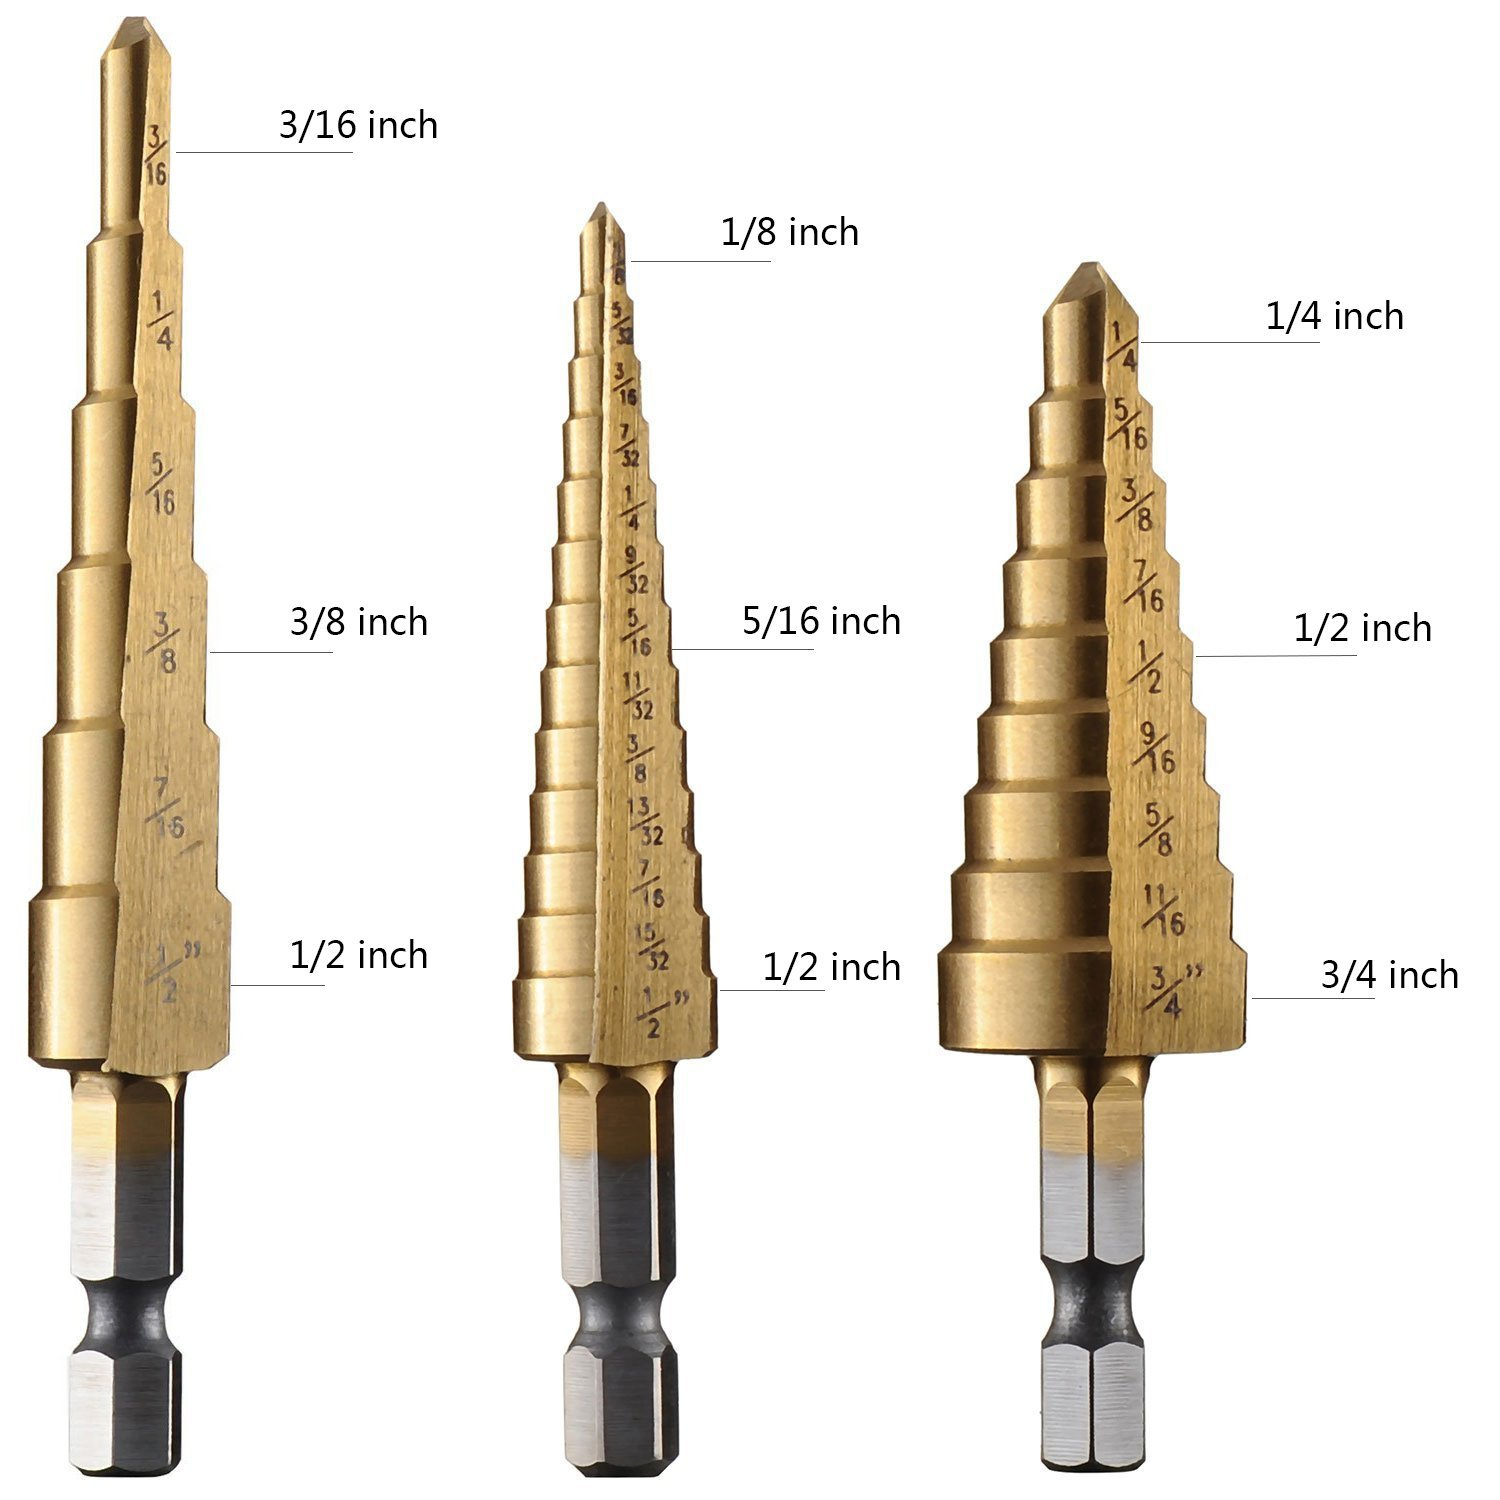 "Yakamoz 3PCS High Speed Steel HSS Titanium Step Drill Bit Set Quick-change 1/4"" Hex Shank SAE - Total 28 Sizes"